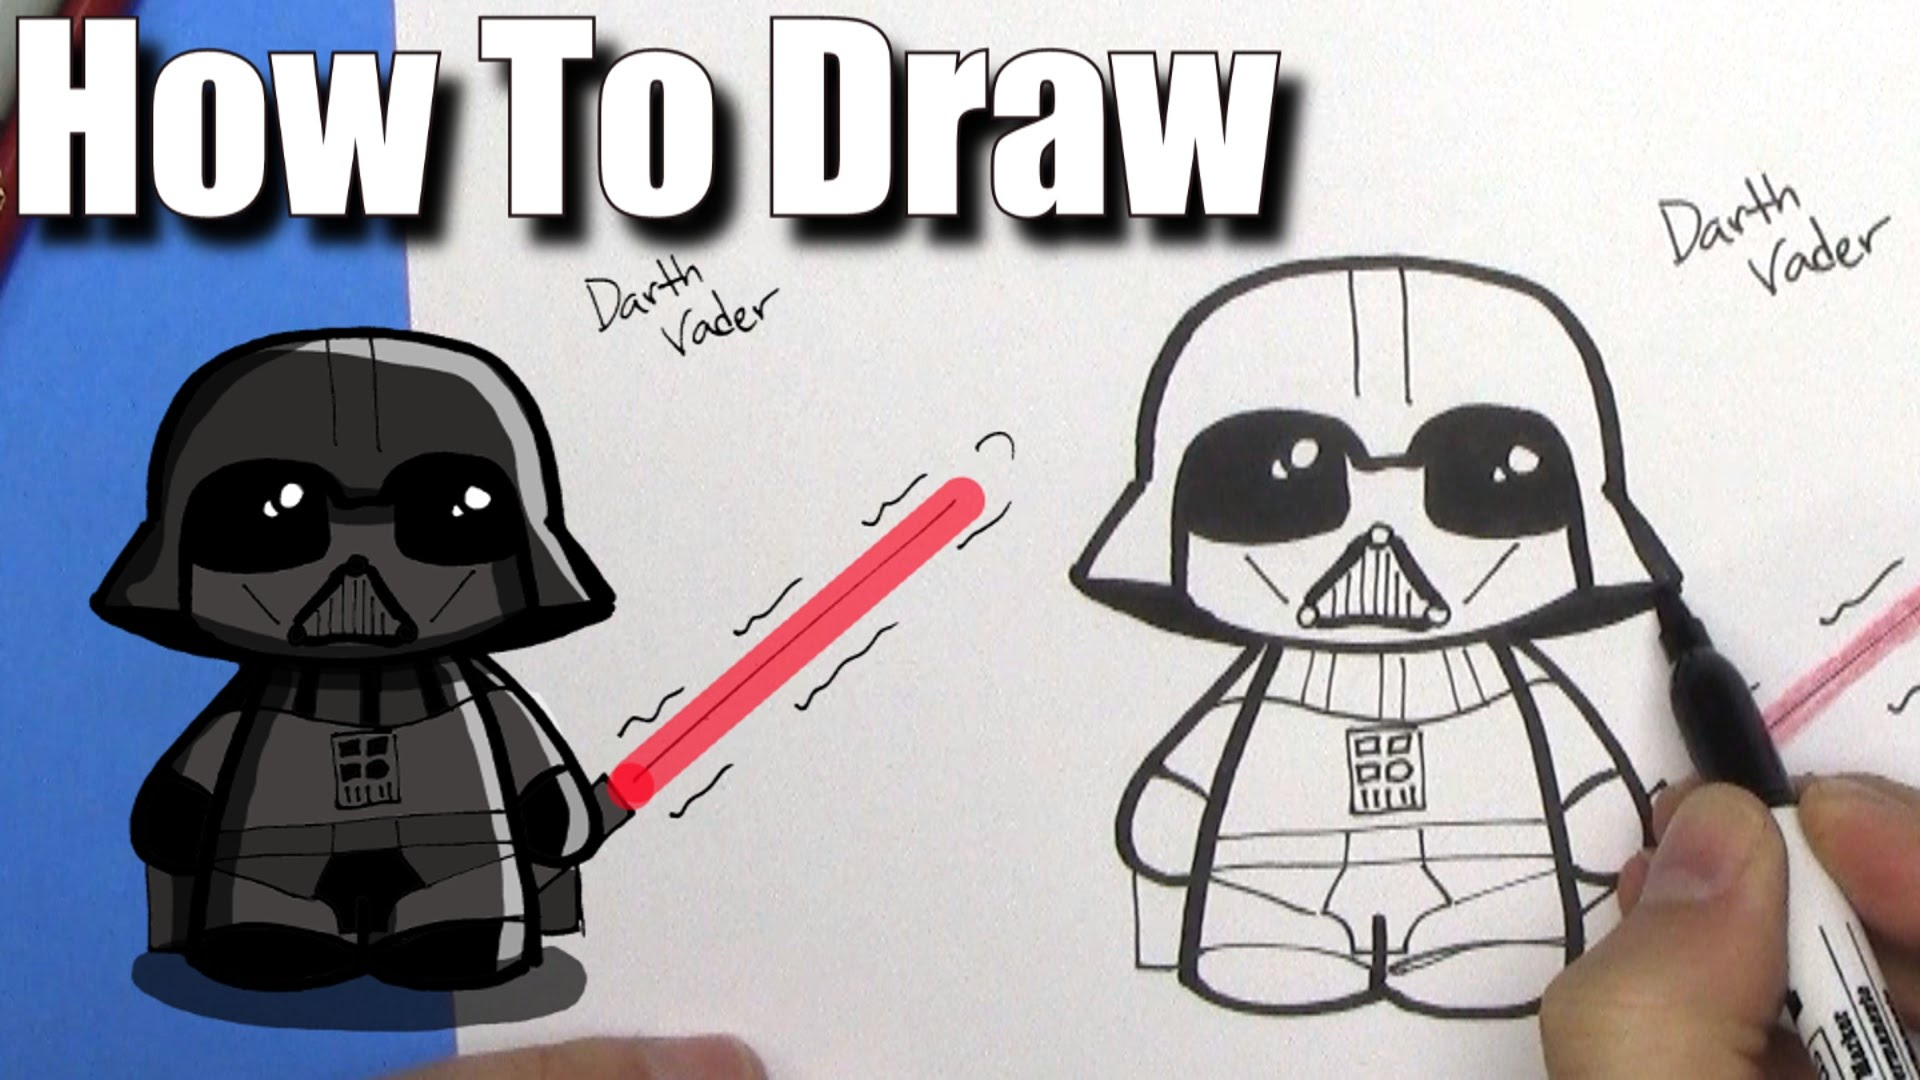 1920x1080 How To Draw Cute Darth Vader